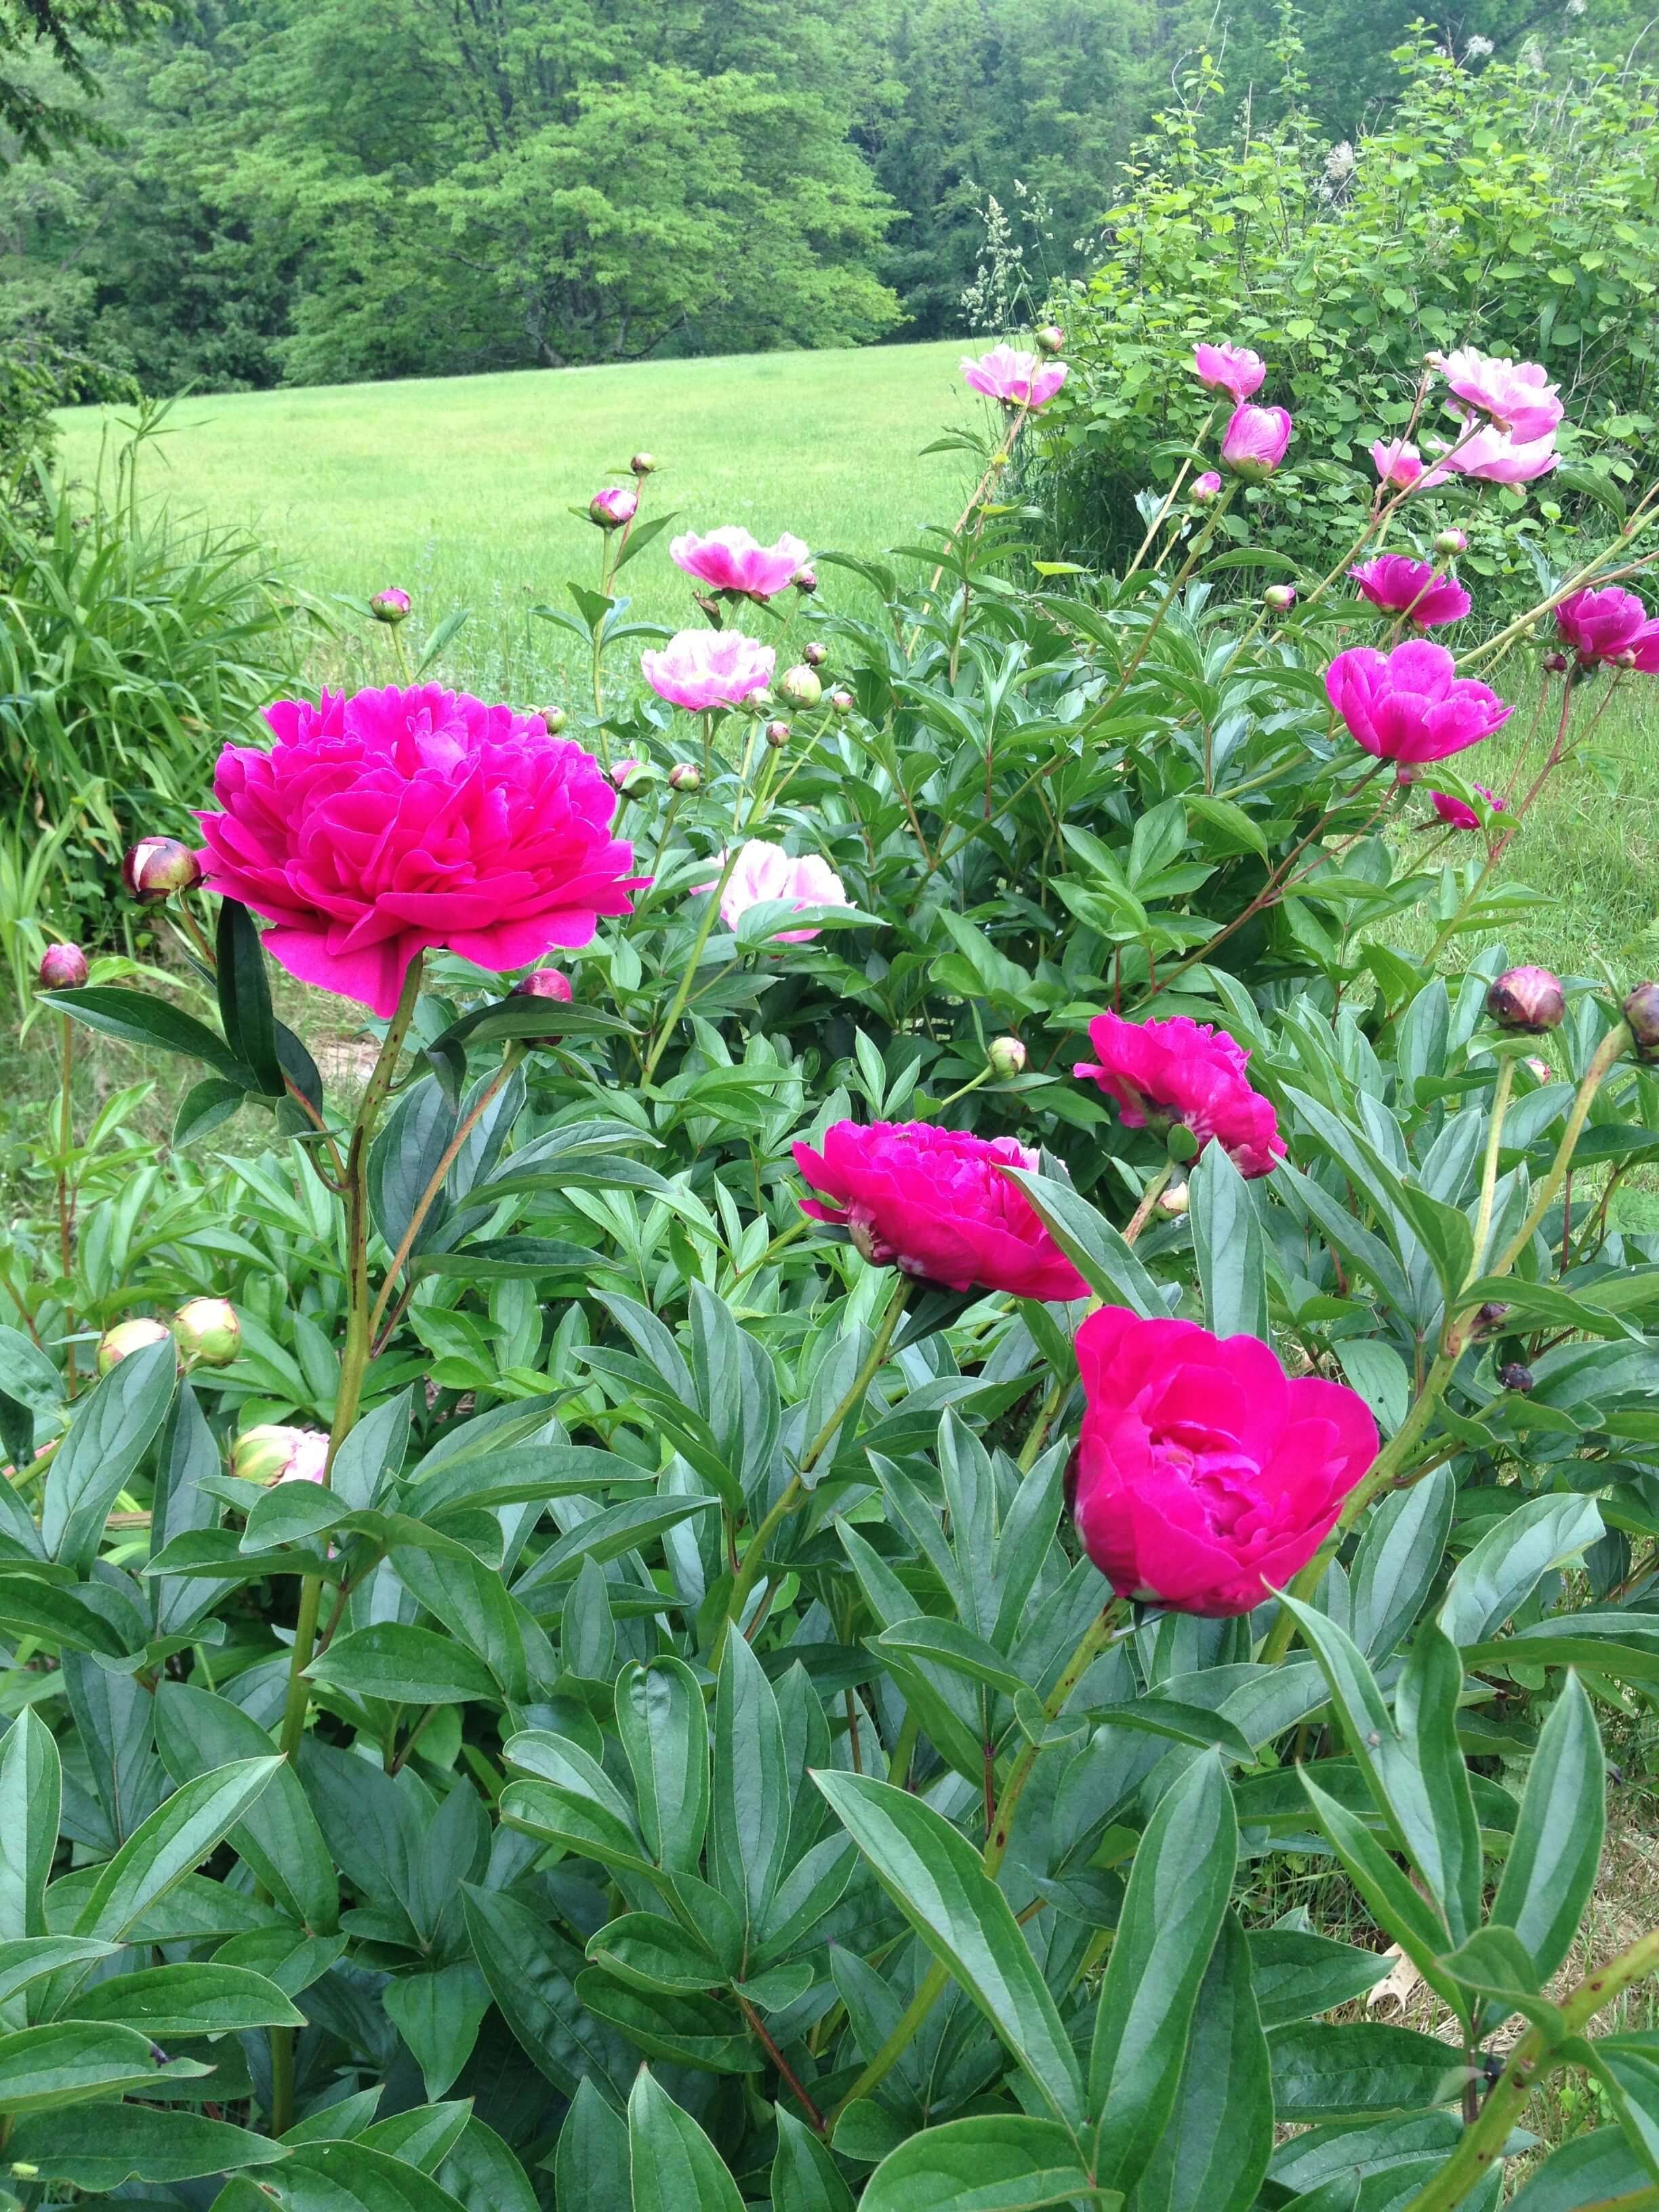 Peonies in Alison Wellner's garden